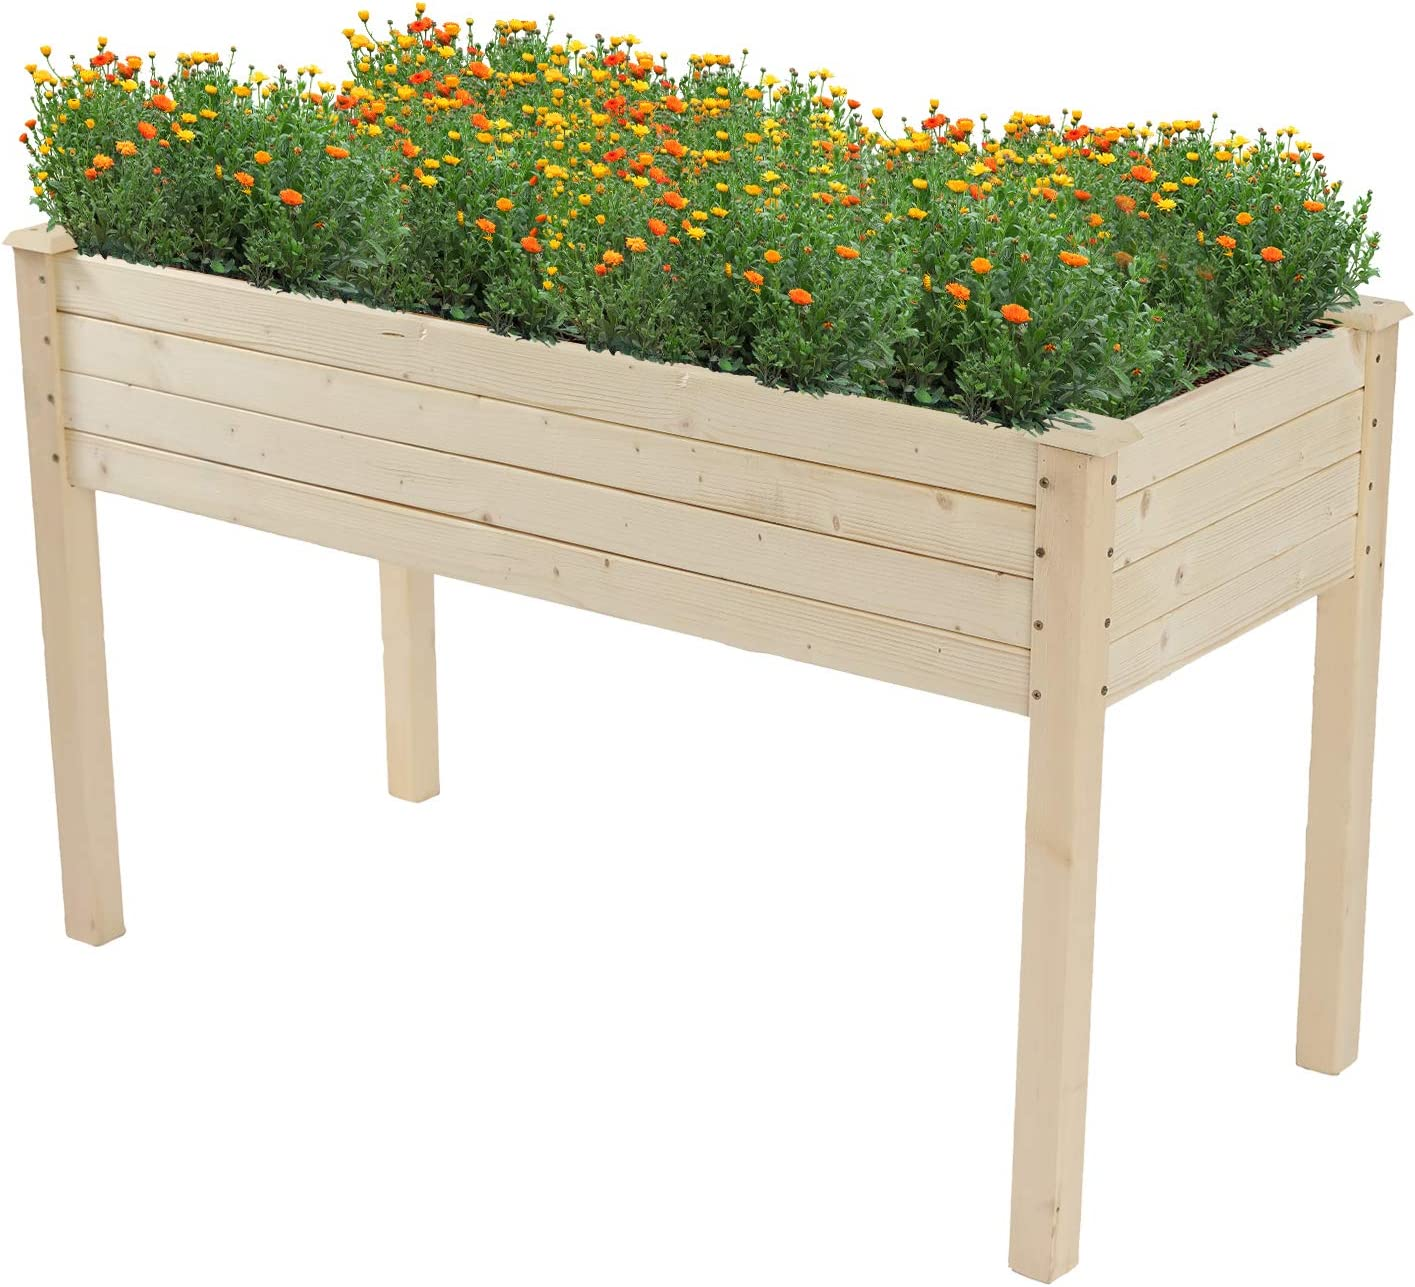 48x24x30-inch Outdoor Wooden Raised Garden Bed Large special price !! High quality Planter for Veget